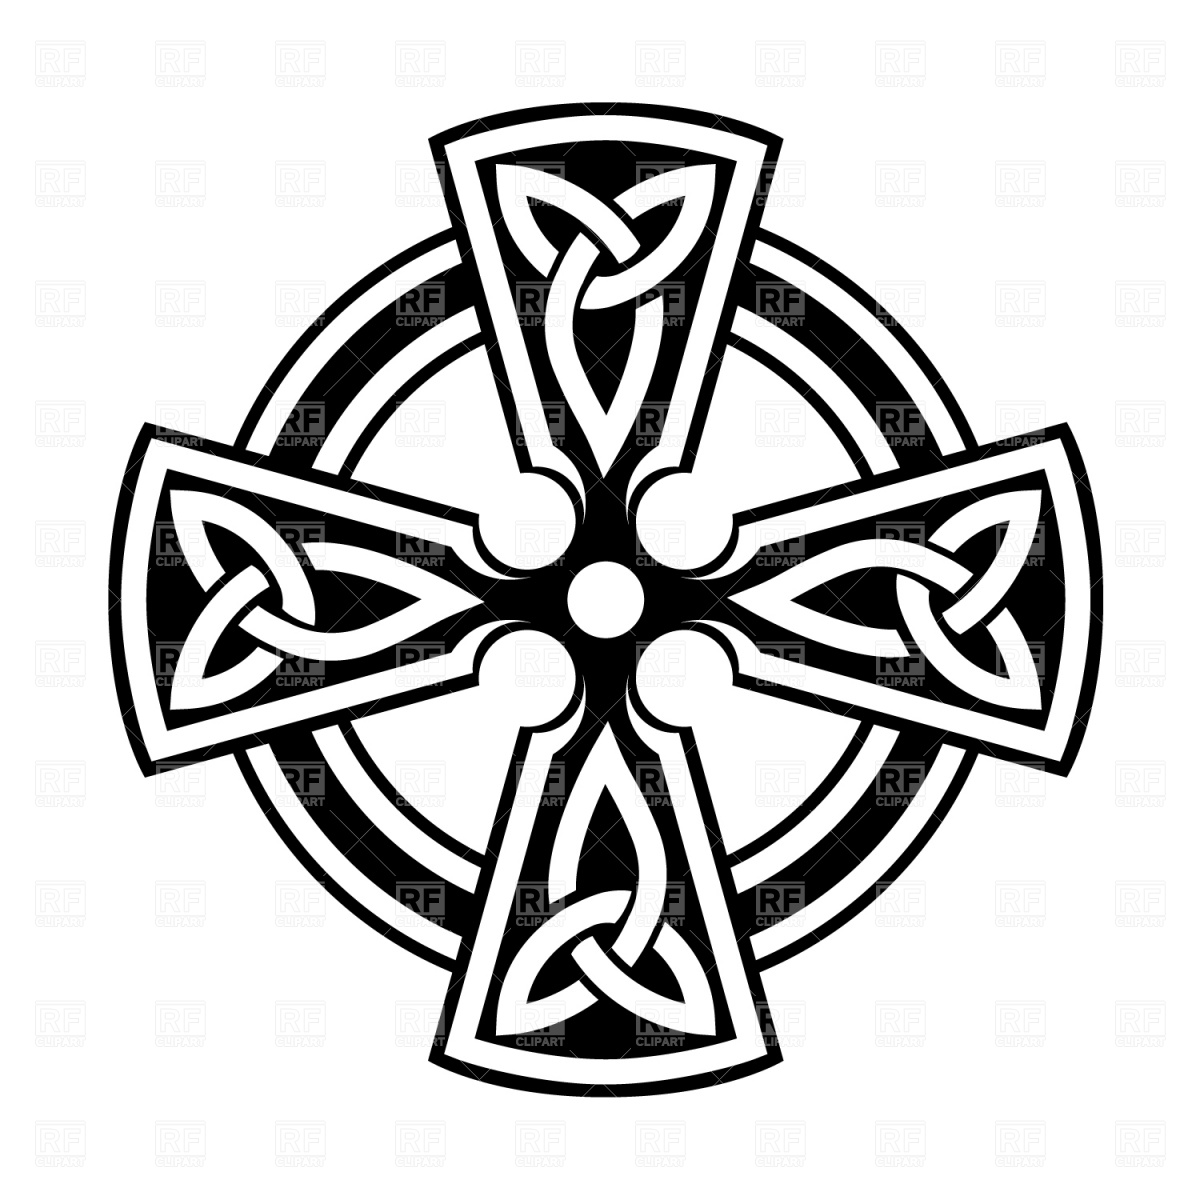 1200x1200 Celtic Cross Vector Image Vector Artwork Of Signs, Symbols, Maps